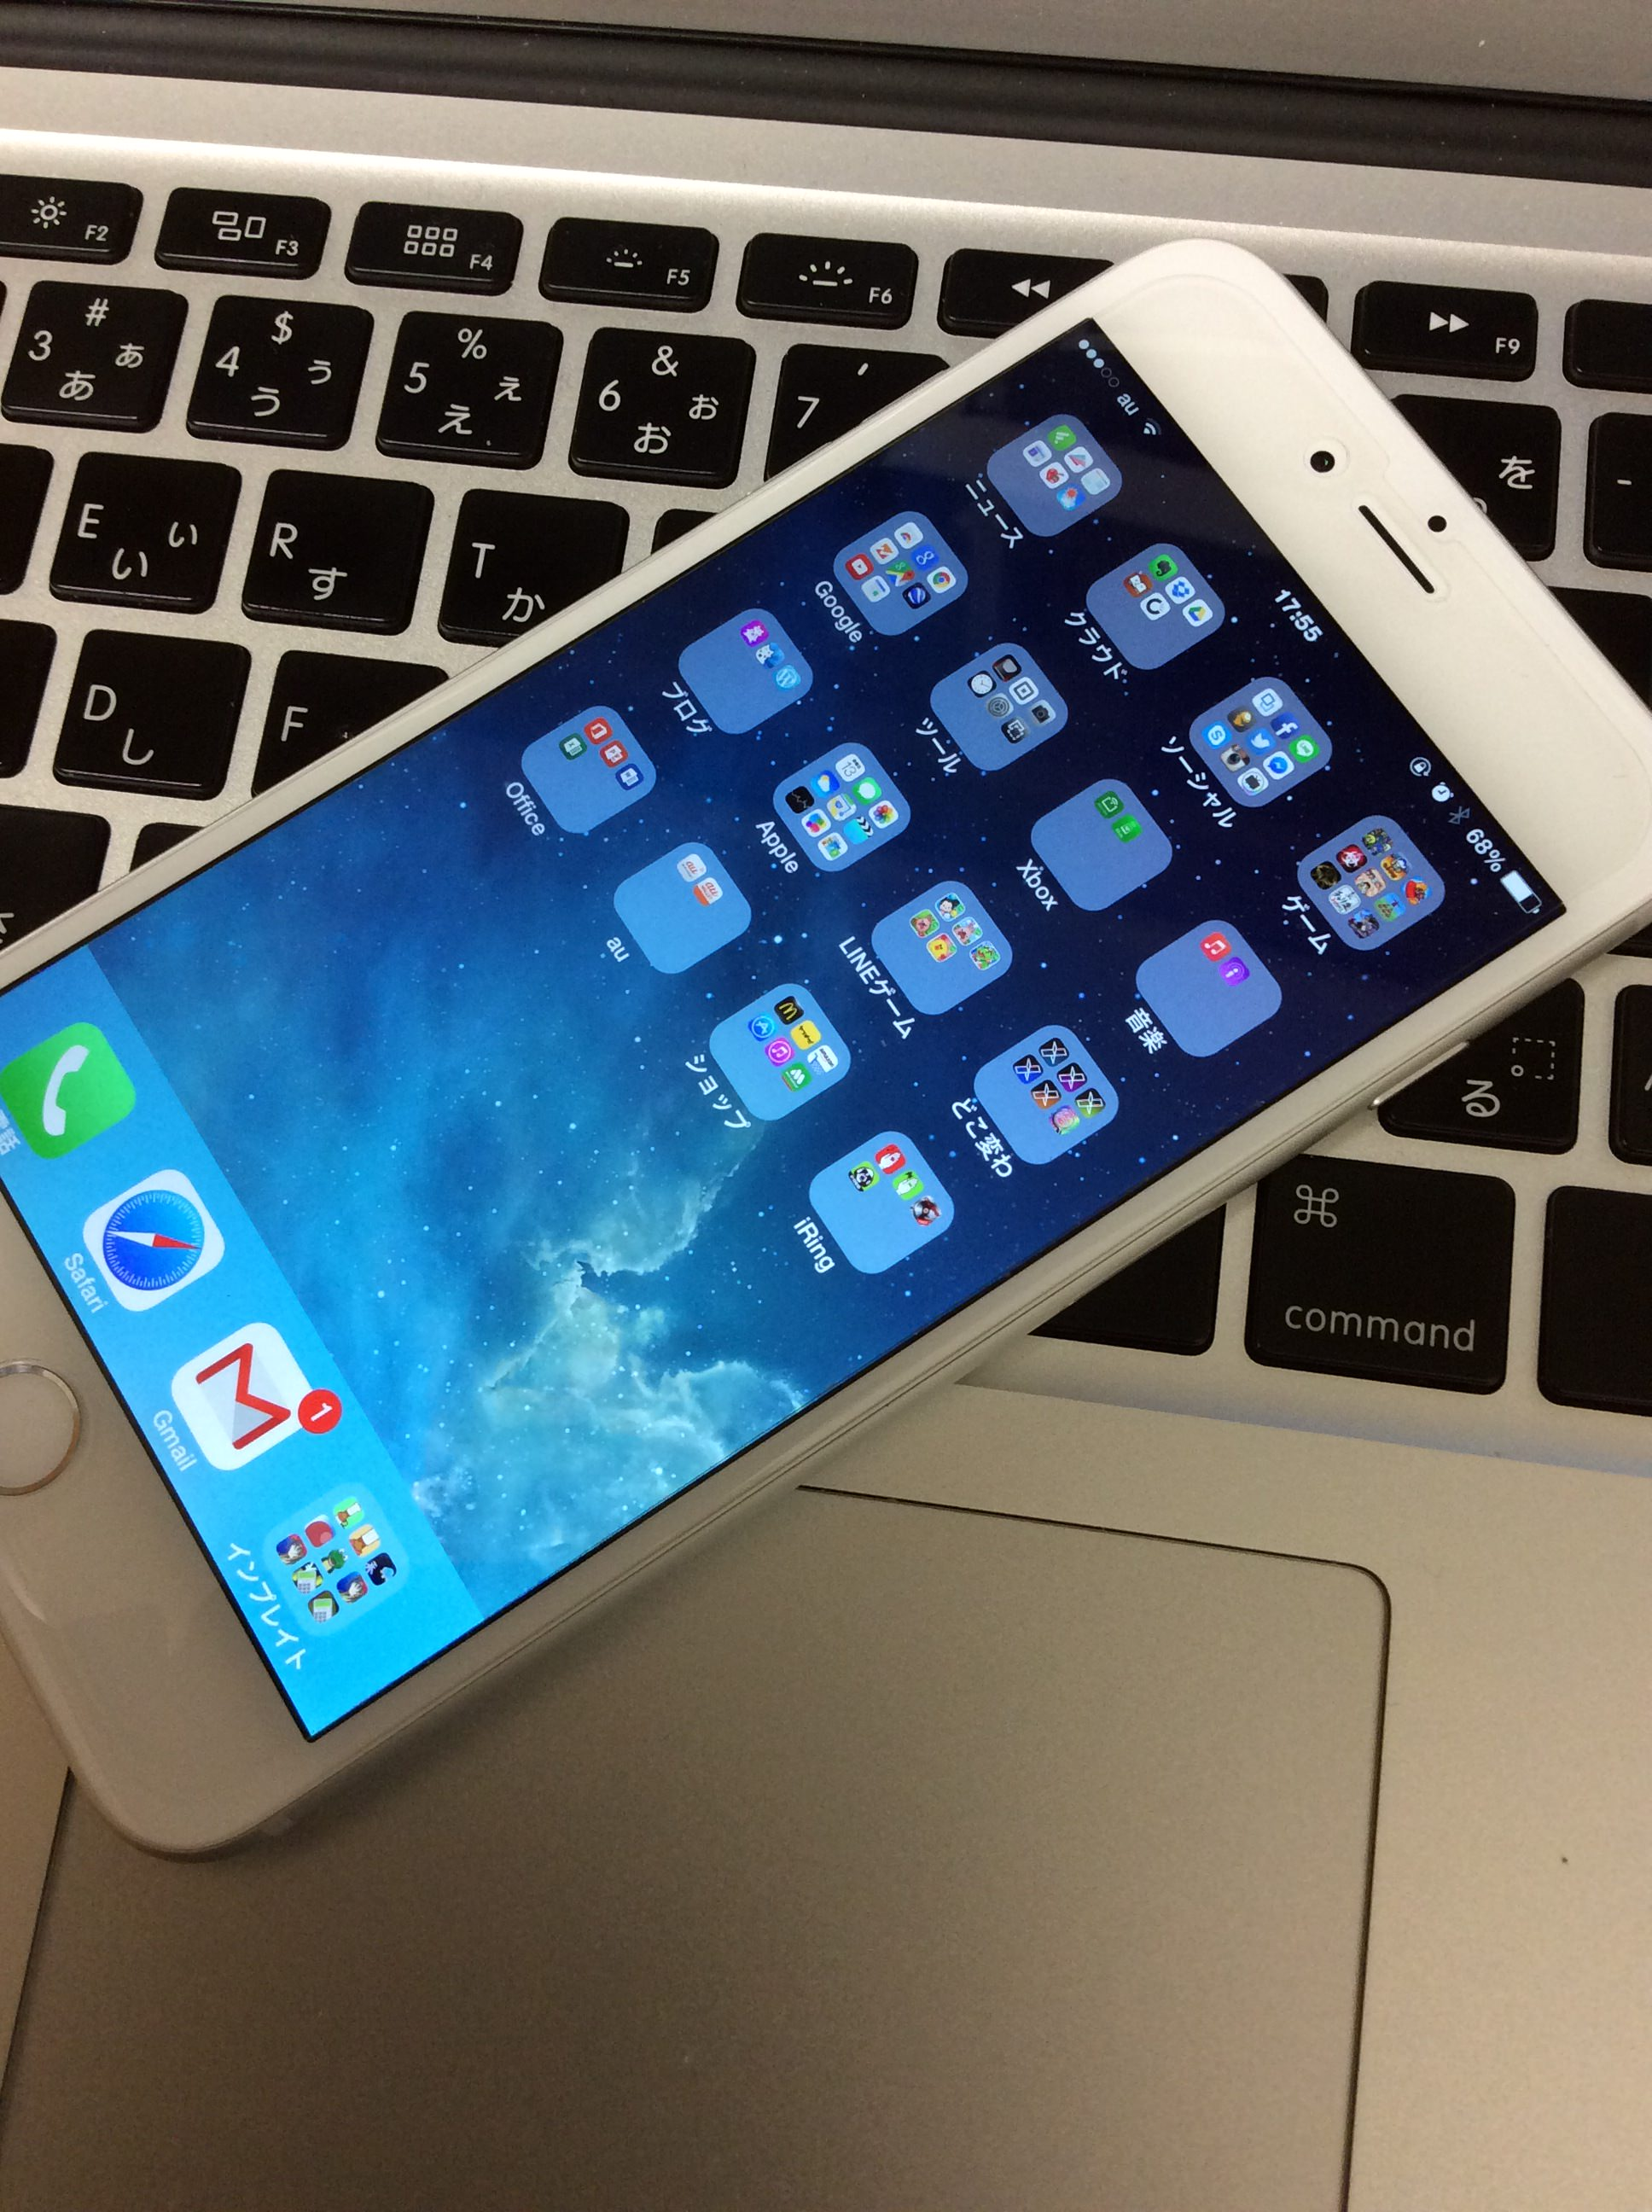 iPhoneとMacBook Air